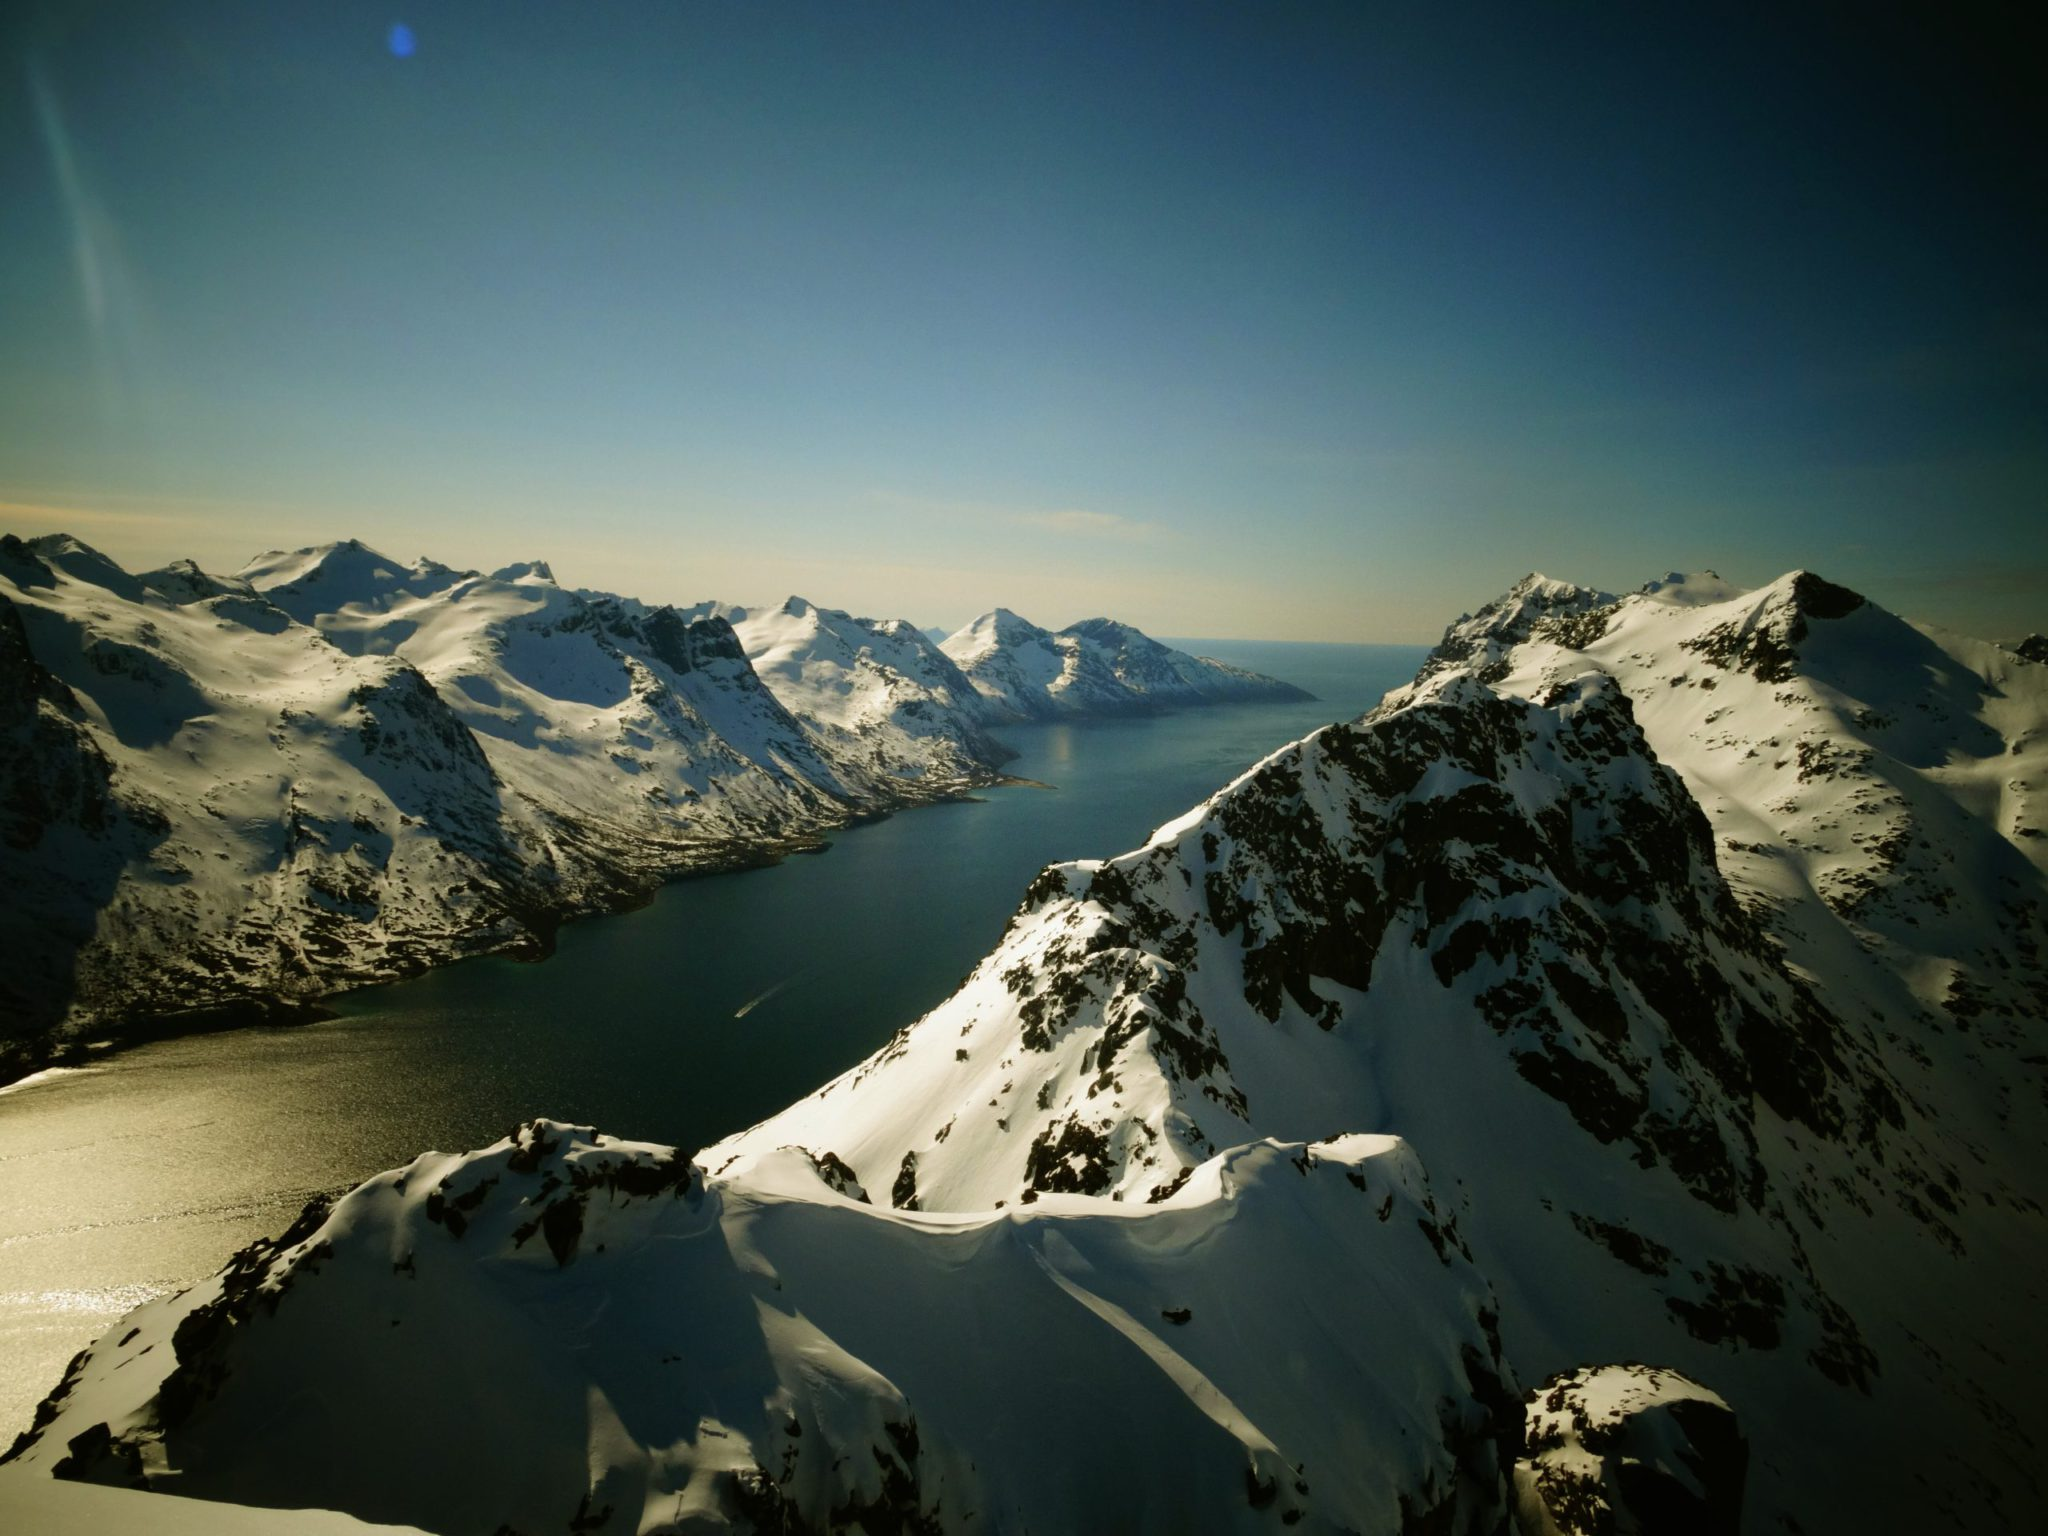 Norwegian backcountry trip: 12 day ski touring holiday in Norway